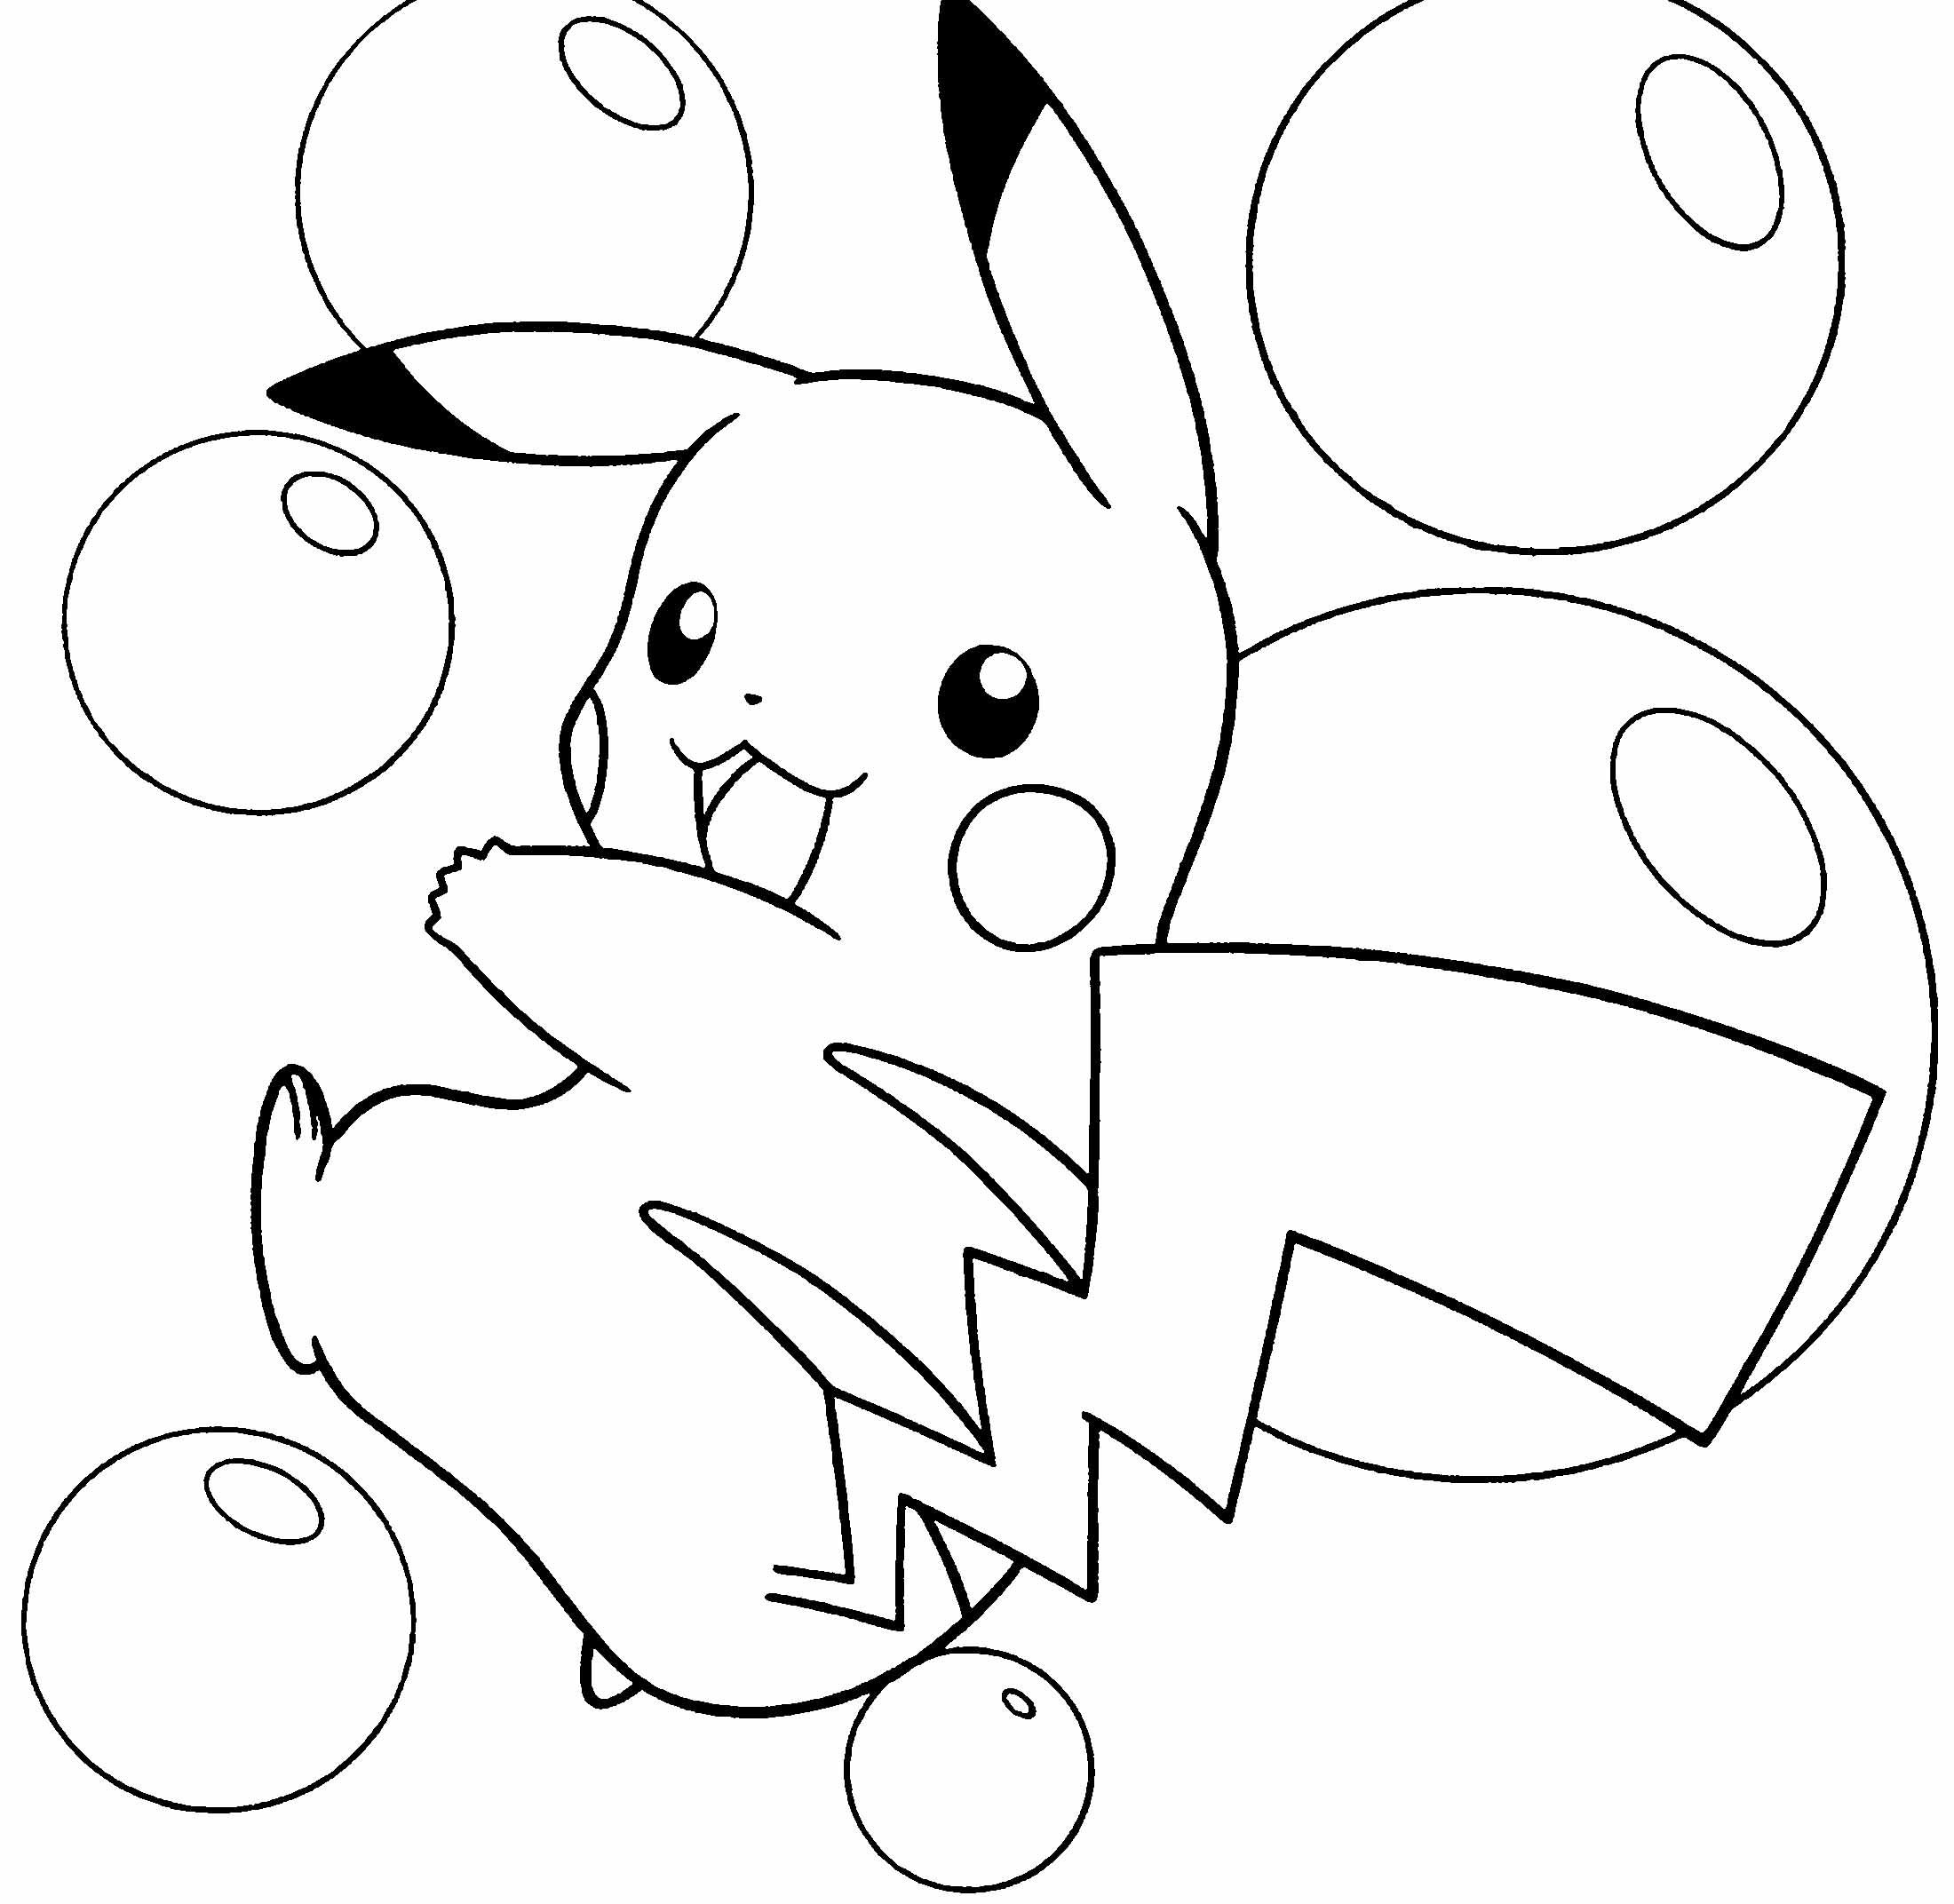 Pokemon Cards Coloring Pages Pikachu Coloring Page Pokemon Coloring Pages Pokemon Printables